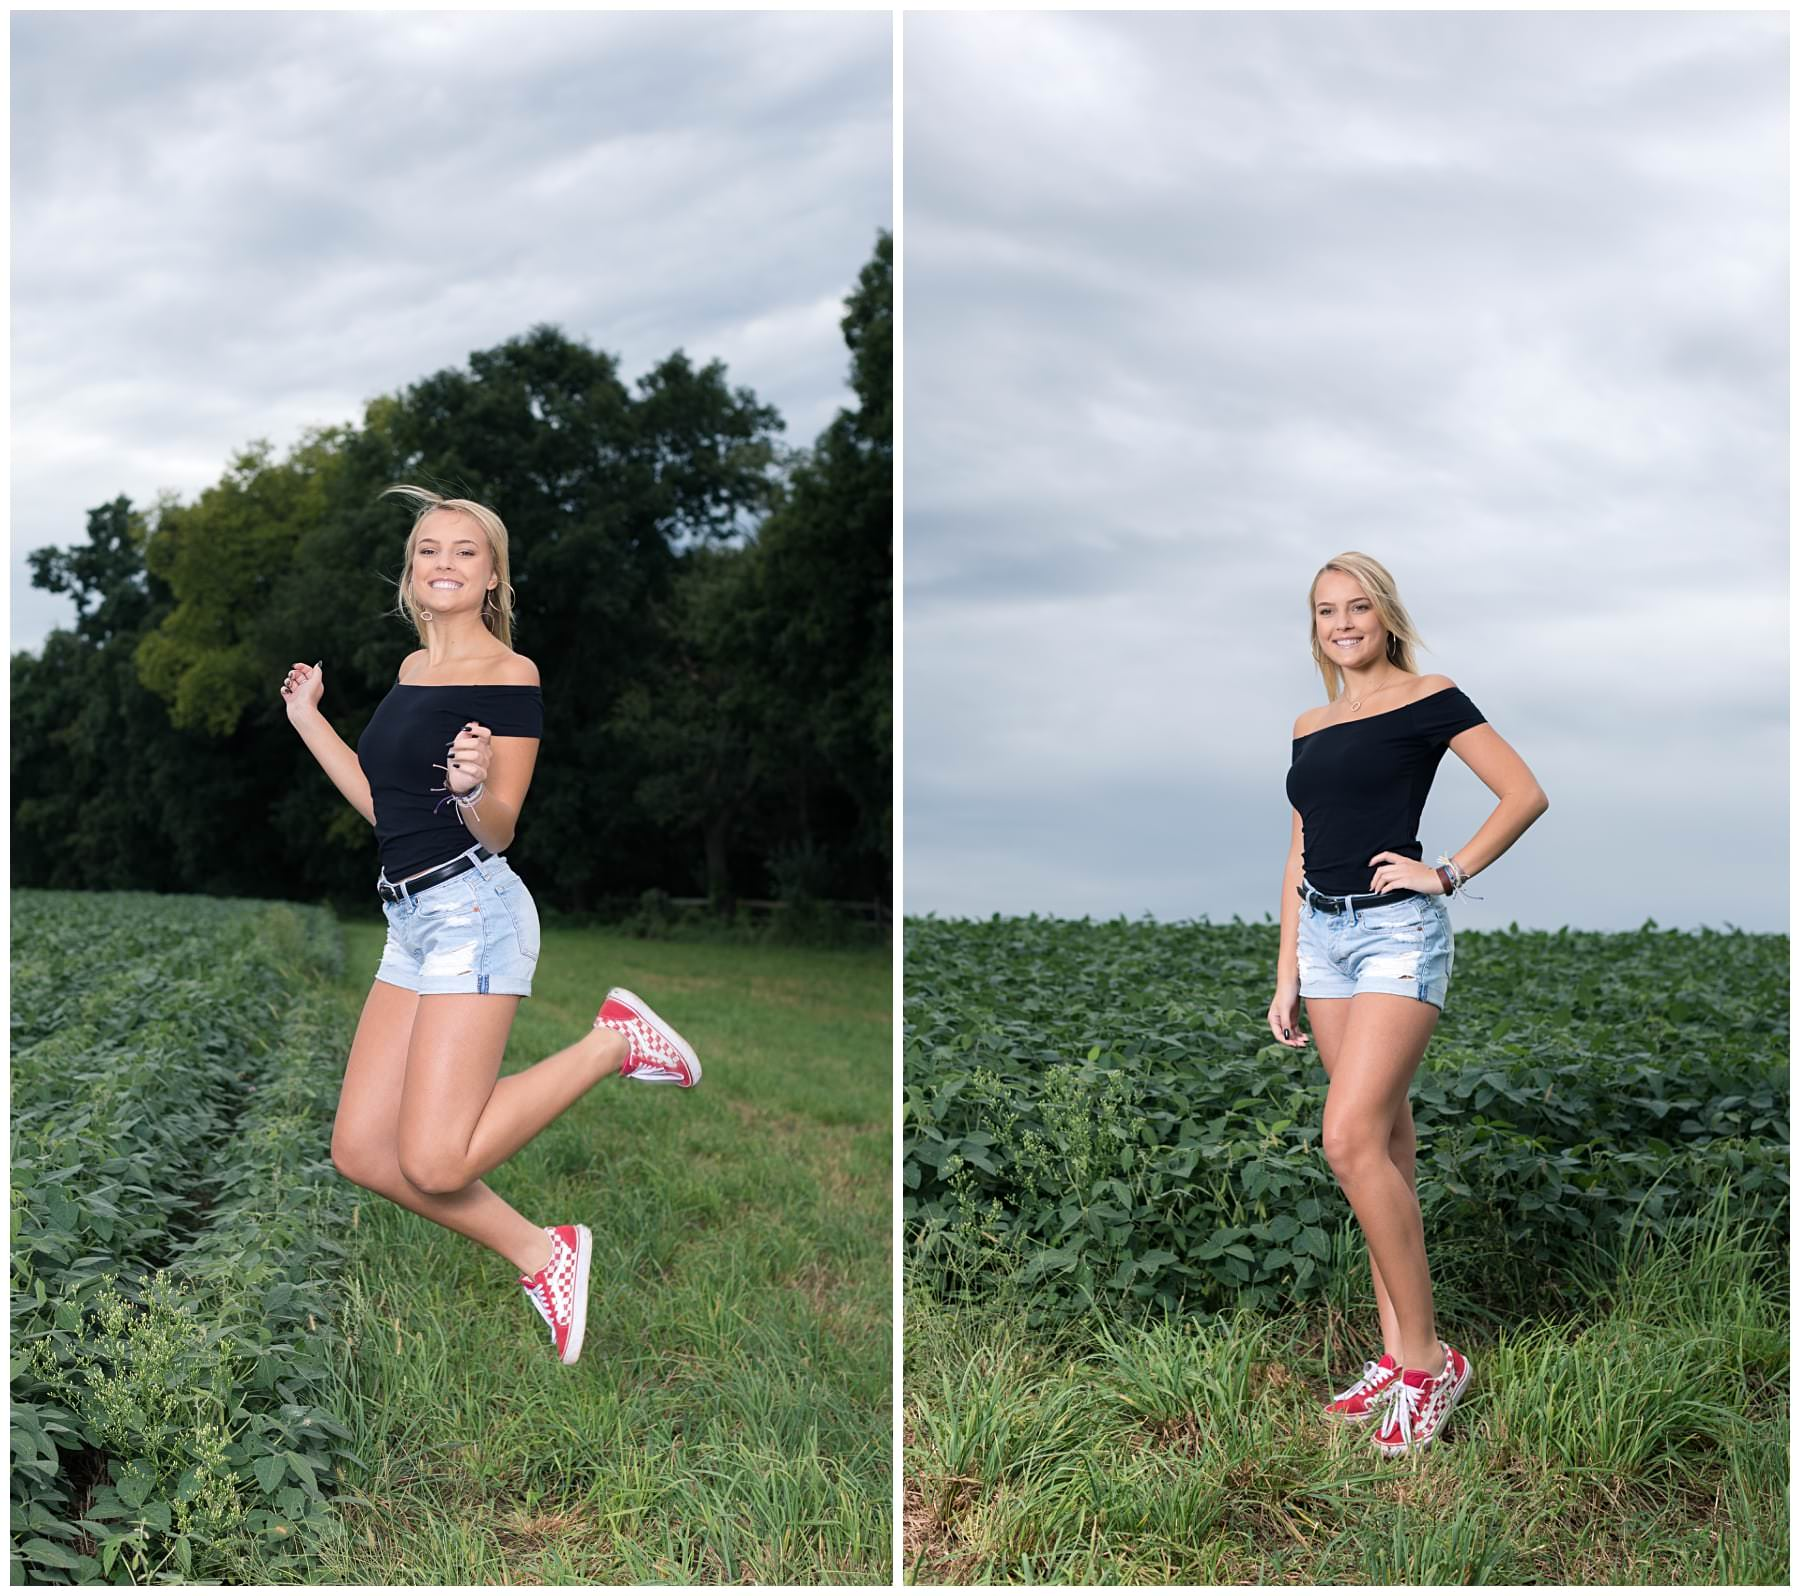 Outdoor senior portraits in a field jumping